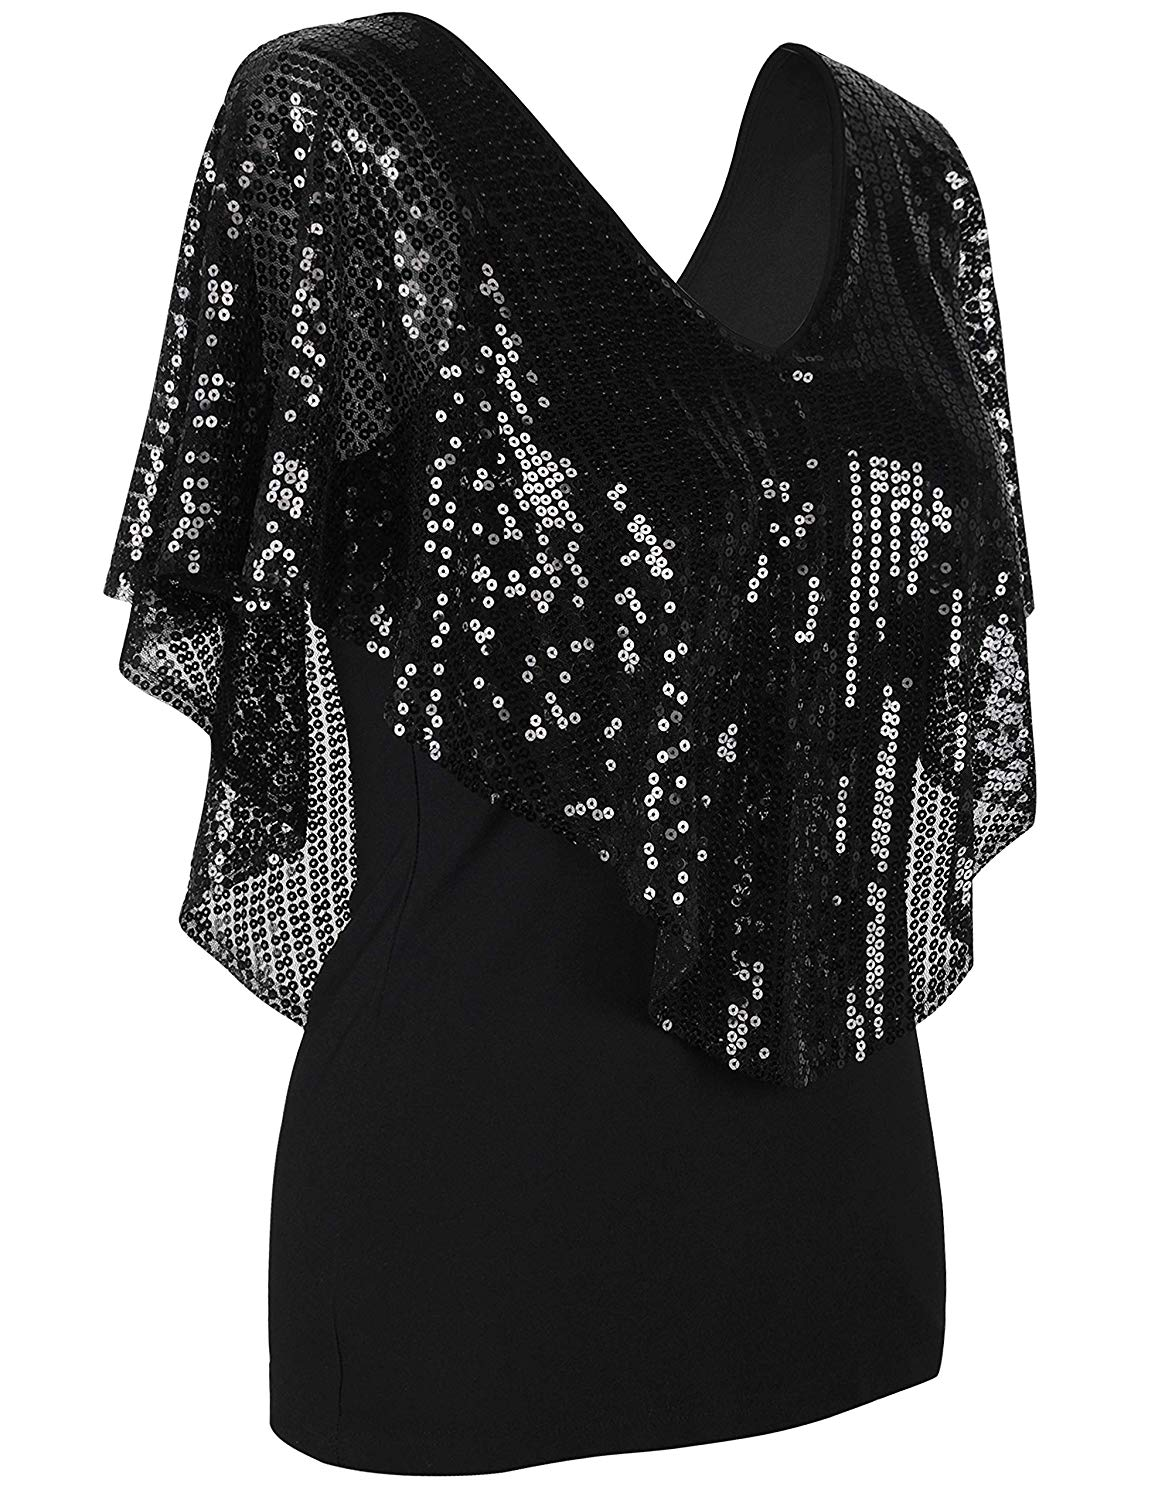 8 Sexy Sequins V Neck Off Shoulders Going Out Party Tops for Women   Batwing Sleeves Cold Shoulder Design Blouses for Women